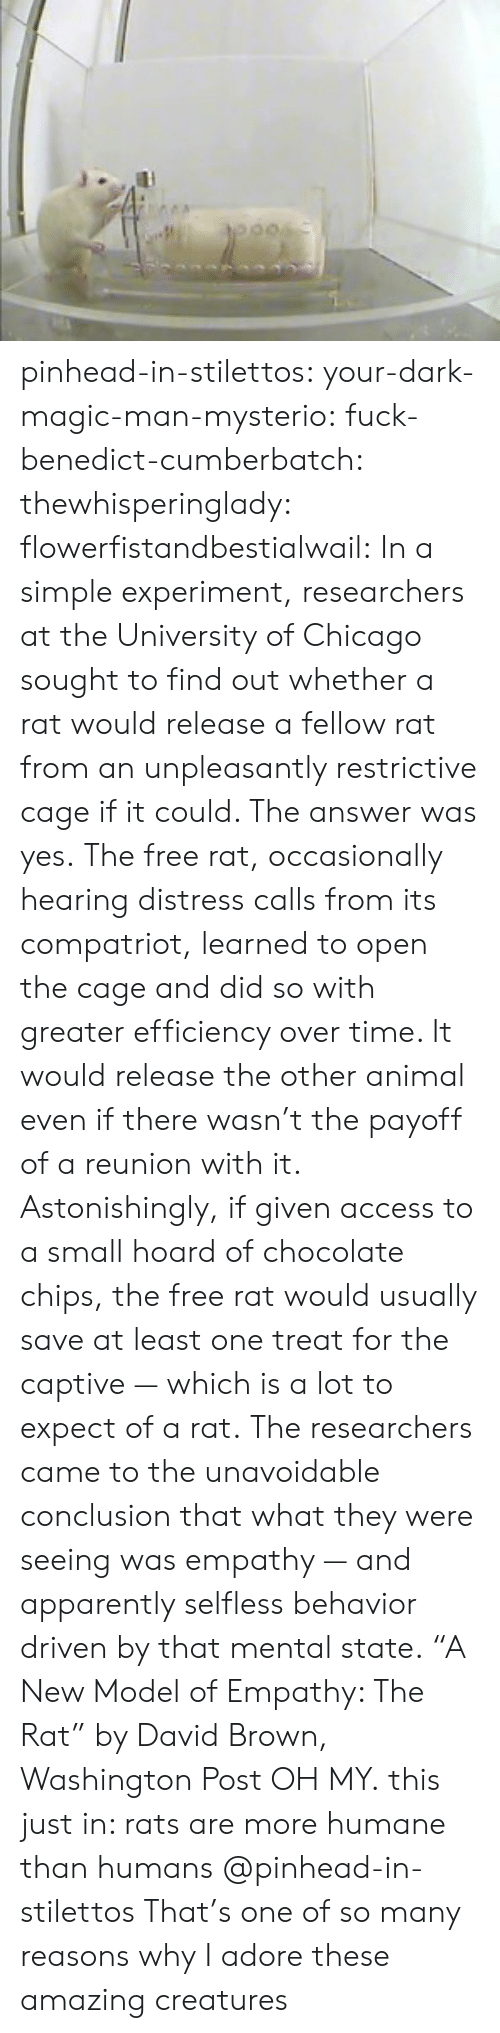 "Apparently, Chicago, and Tumblr: pinhead-in-stilettos:  your-dark-magic-man-mysterio:  fuck-benedict-cumberbatch:   thewhisperinglady:  flowerfistandbestialwail:   In a simple experiment, researchers at the University of Chicago sought to find out whether a rat would release a fellow rat from an unpleasantly restrictive cage if it could. The answer was yes. The free rat, occasionally hearing distress calls from its compatriot, learned to open the cage and did so with greater efficiency over time. It would release the other animal even if there wasn't the payoff of a reunion with it. Astonishingly, if given access to a small hoard of chocolate chips, the free rat would usually save at least one treat for the captive — which is a lot to expect of a rat. The researchers came to the unavoidable conclusion that what they were seeing was empathy — and apparently selfless behavior driven by that mental state. ""A New Model of Empathy: The Rat"" by David Brown, Washington Post   OH MY.  this just in: rats are more humane than humans   @pinhead-in-stilettos  That's one of so many reasons why I adore these amazing creatures"